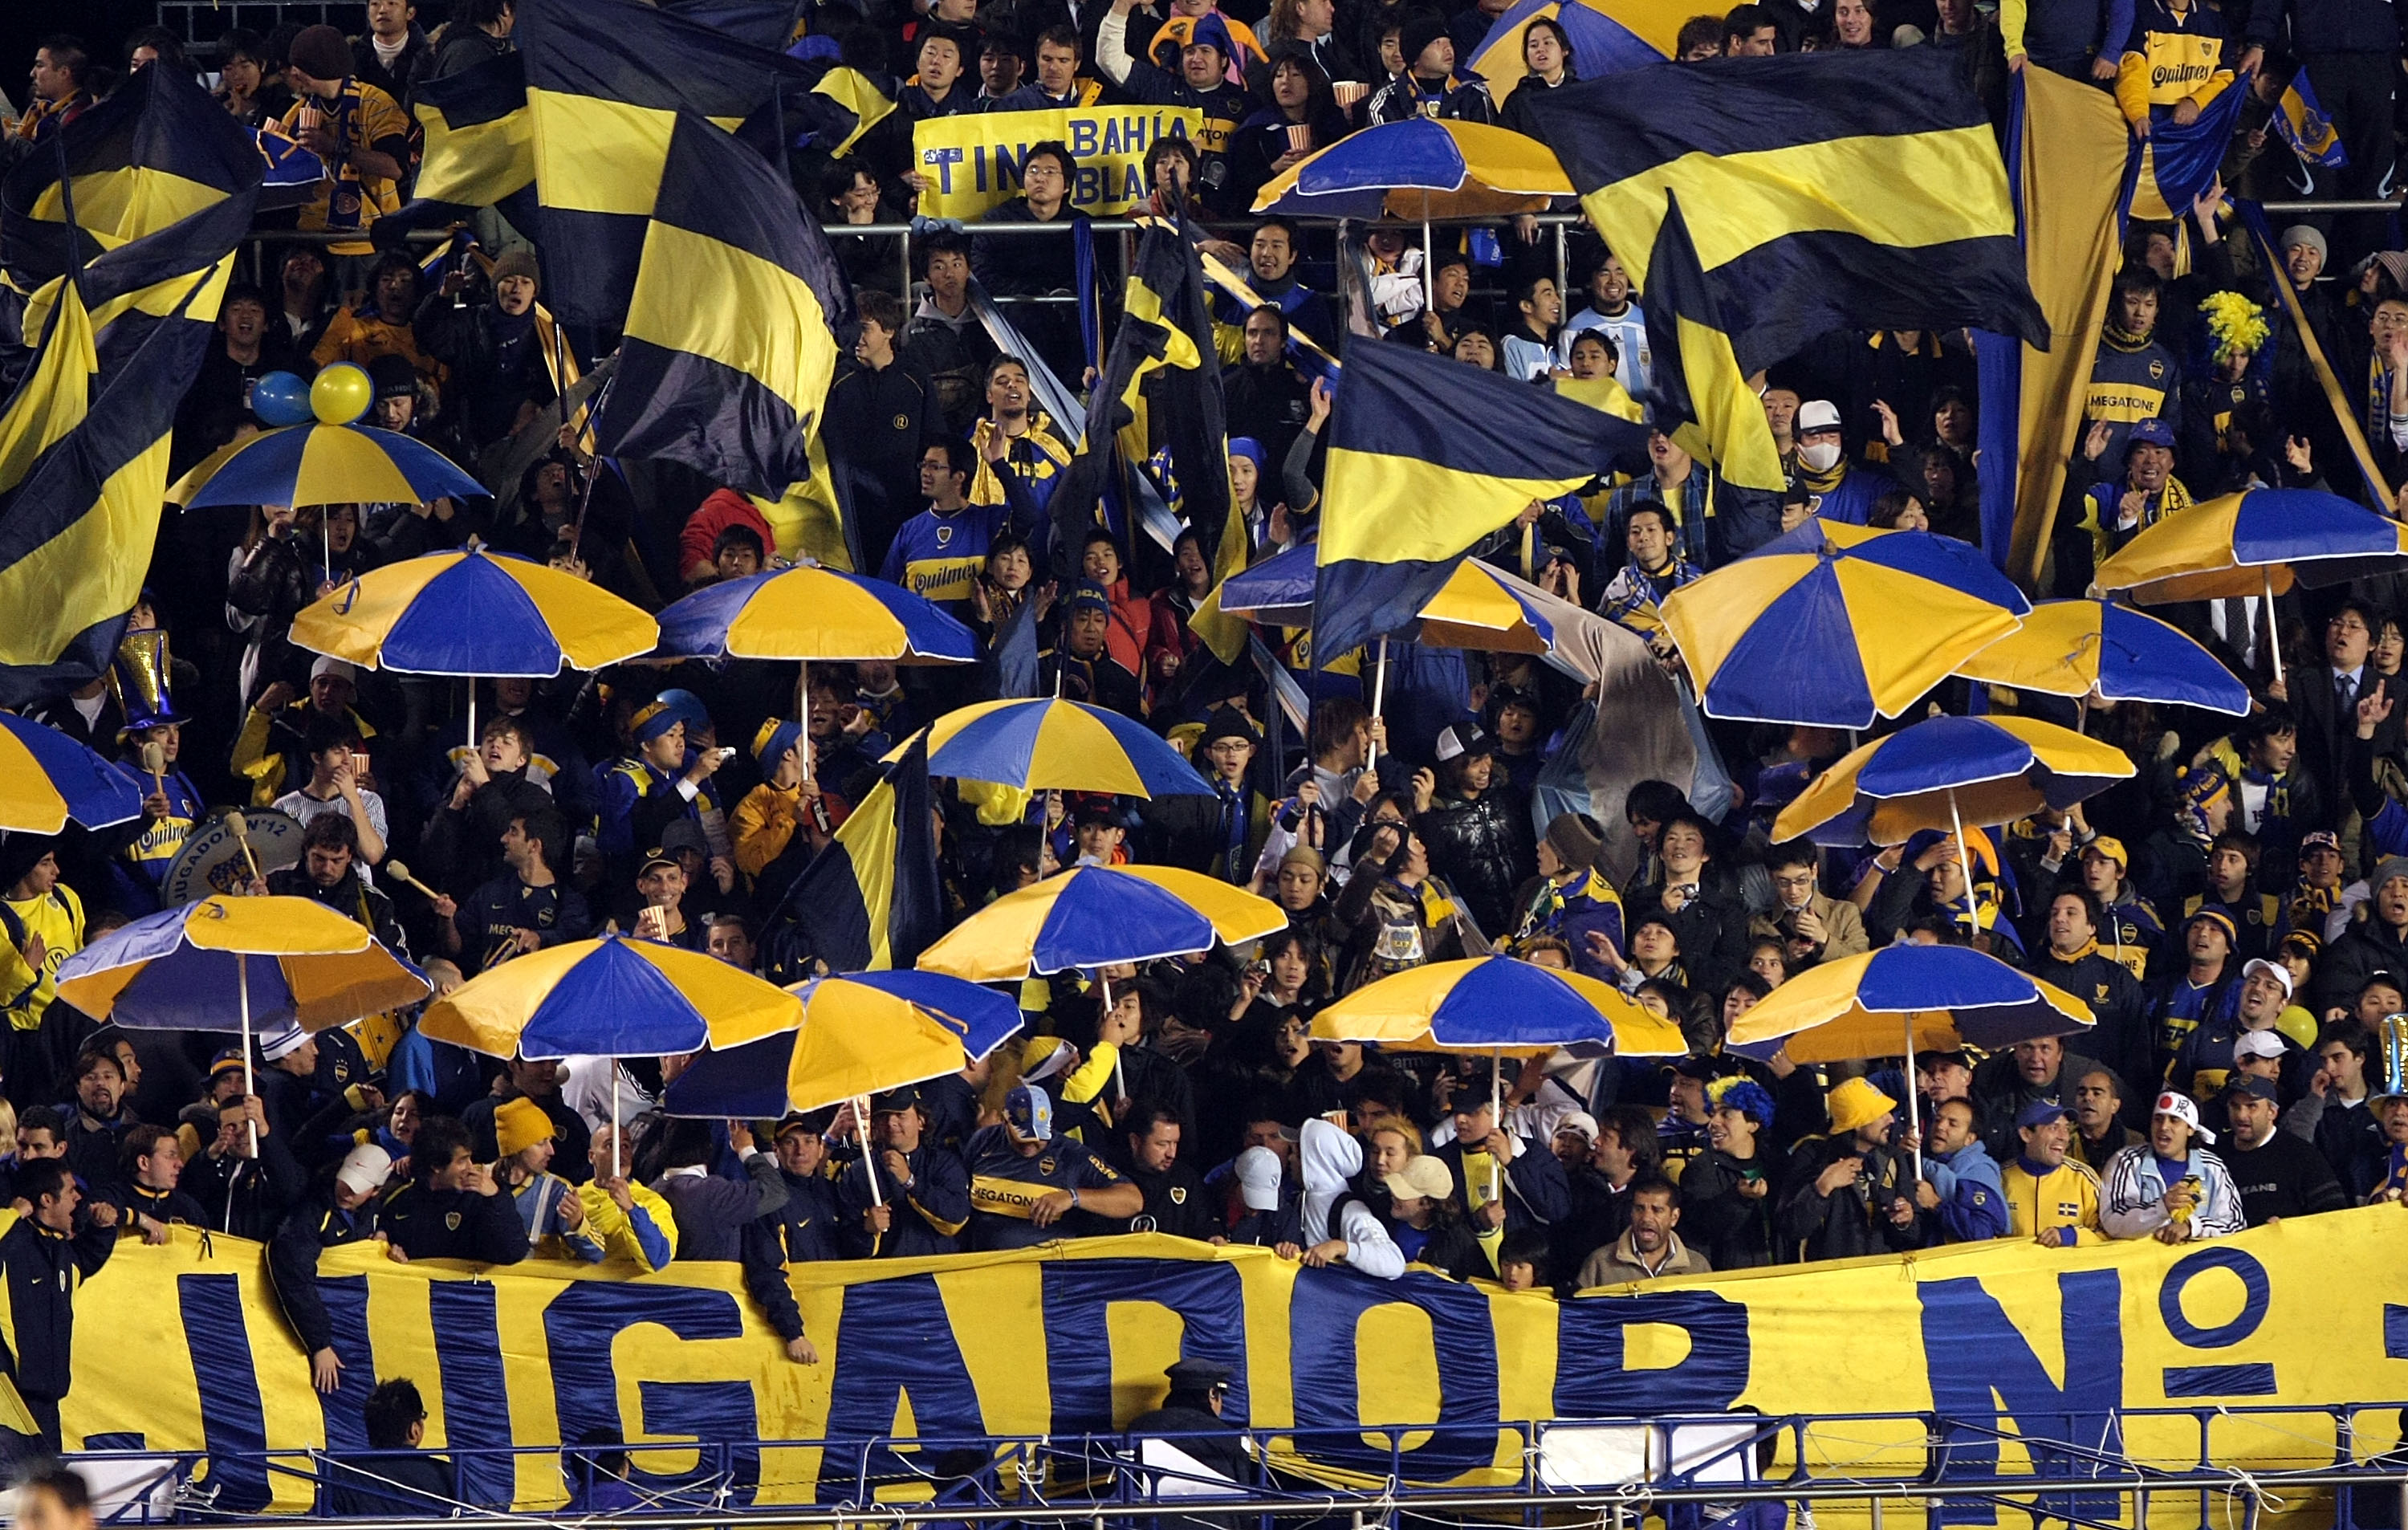 River Plate Players Pepper Sprayed By Boca Juniors Fan In